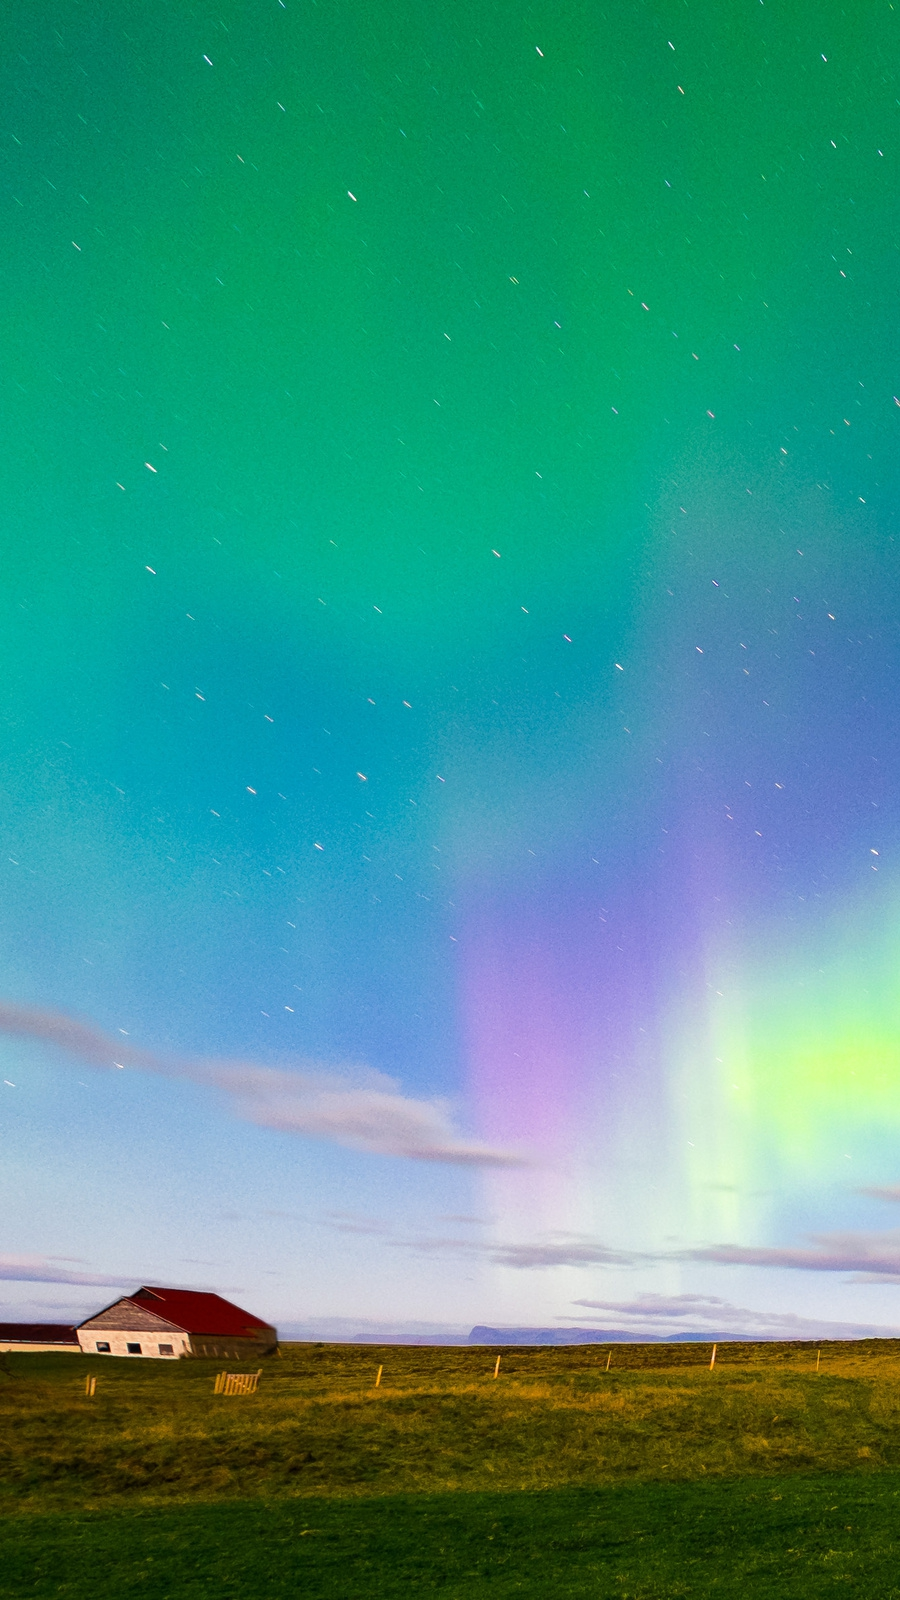 Abstract Animal Wallpaper Iceland Aurora Borealis Northern Lights Iphone Wallpaper